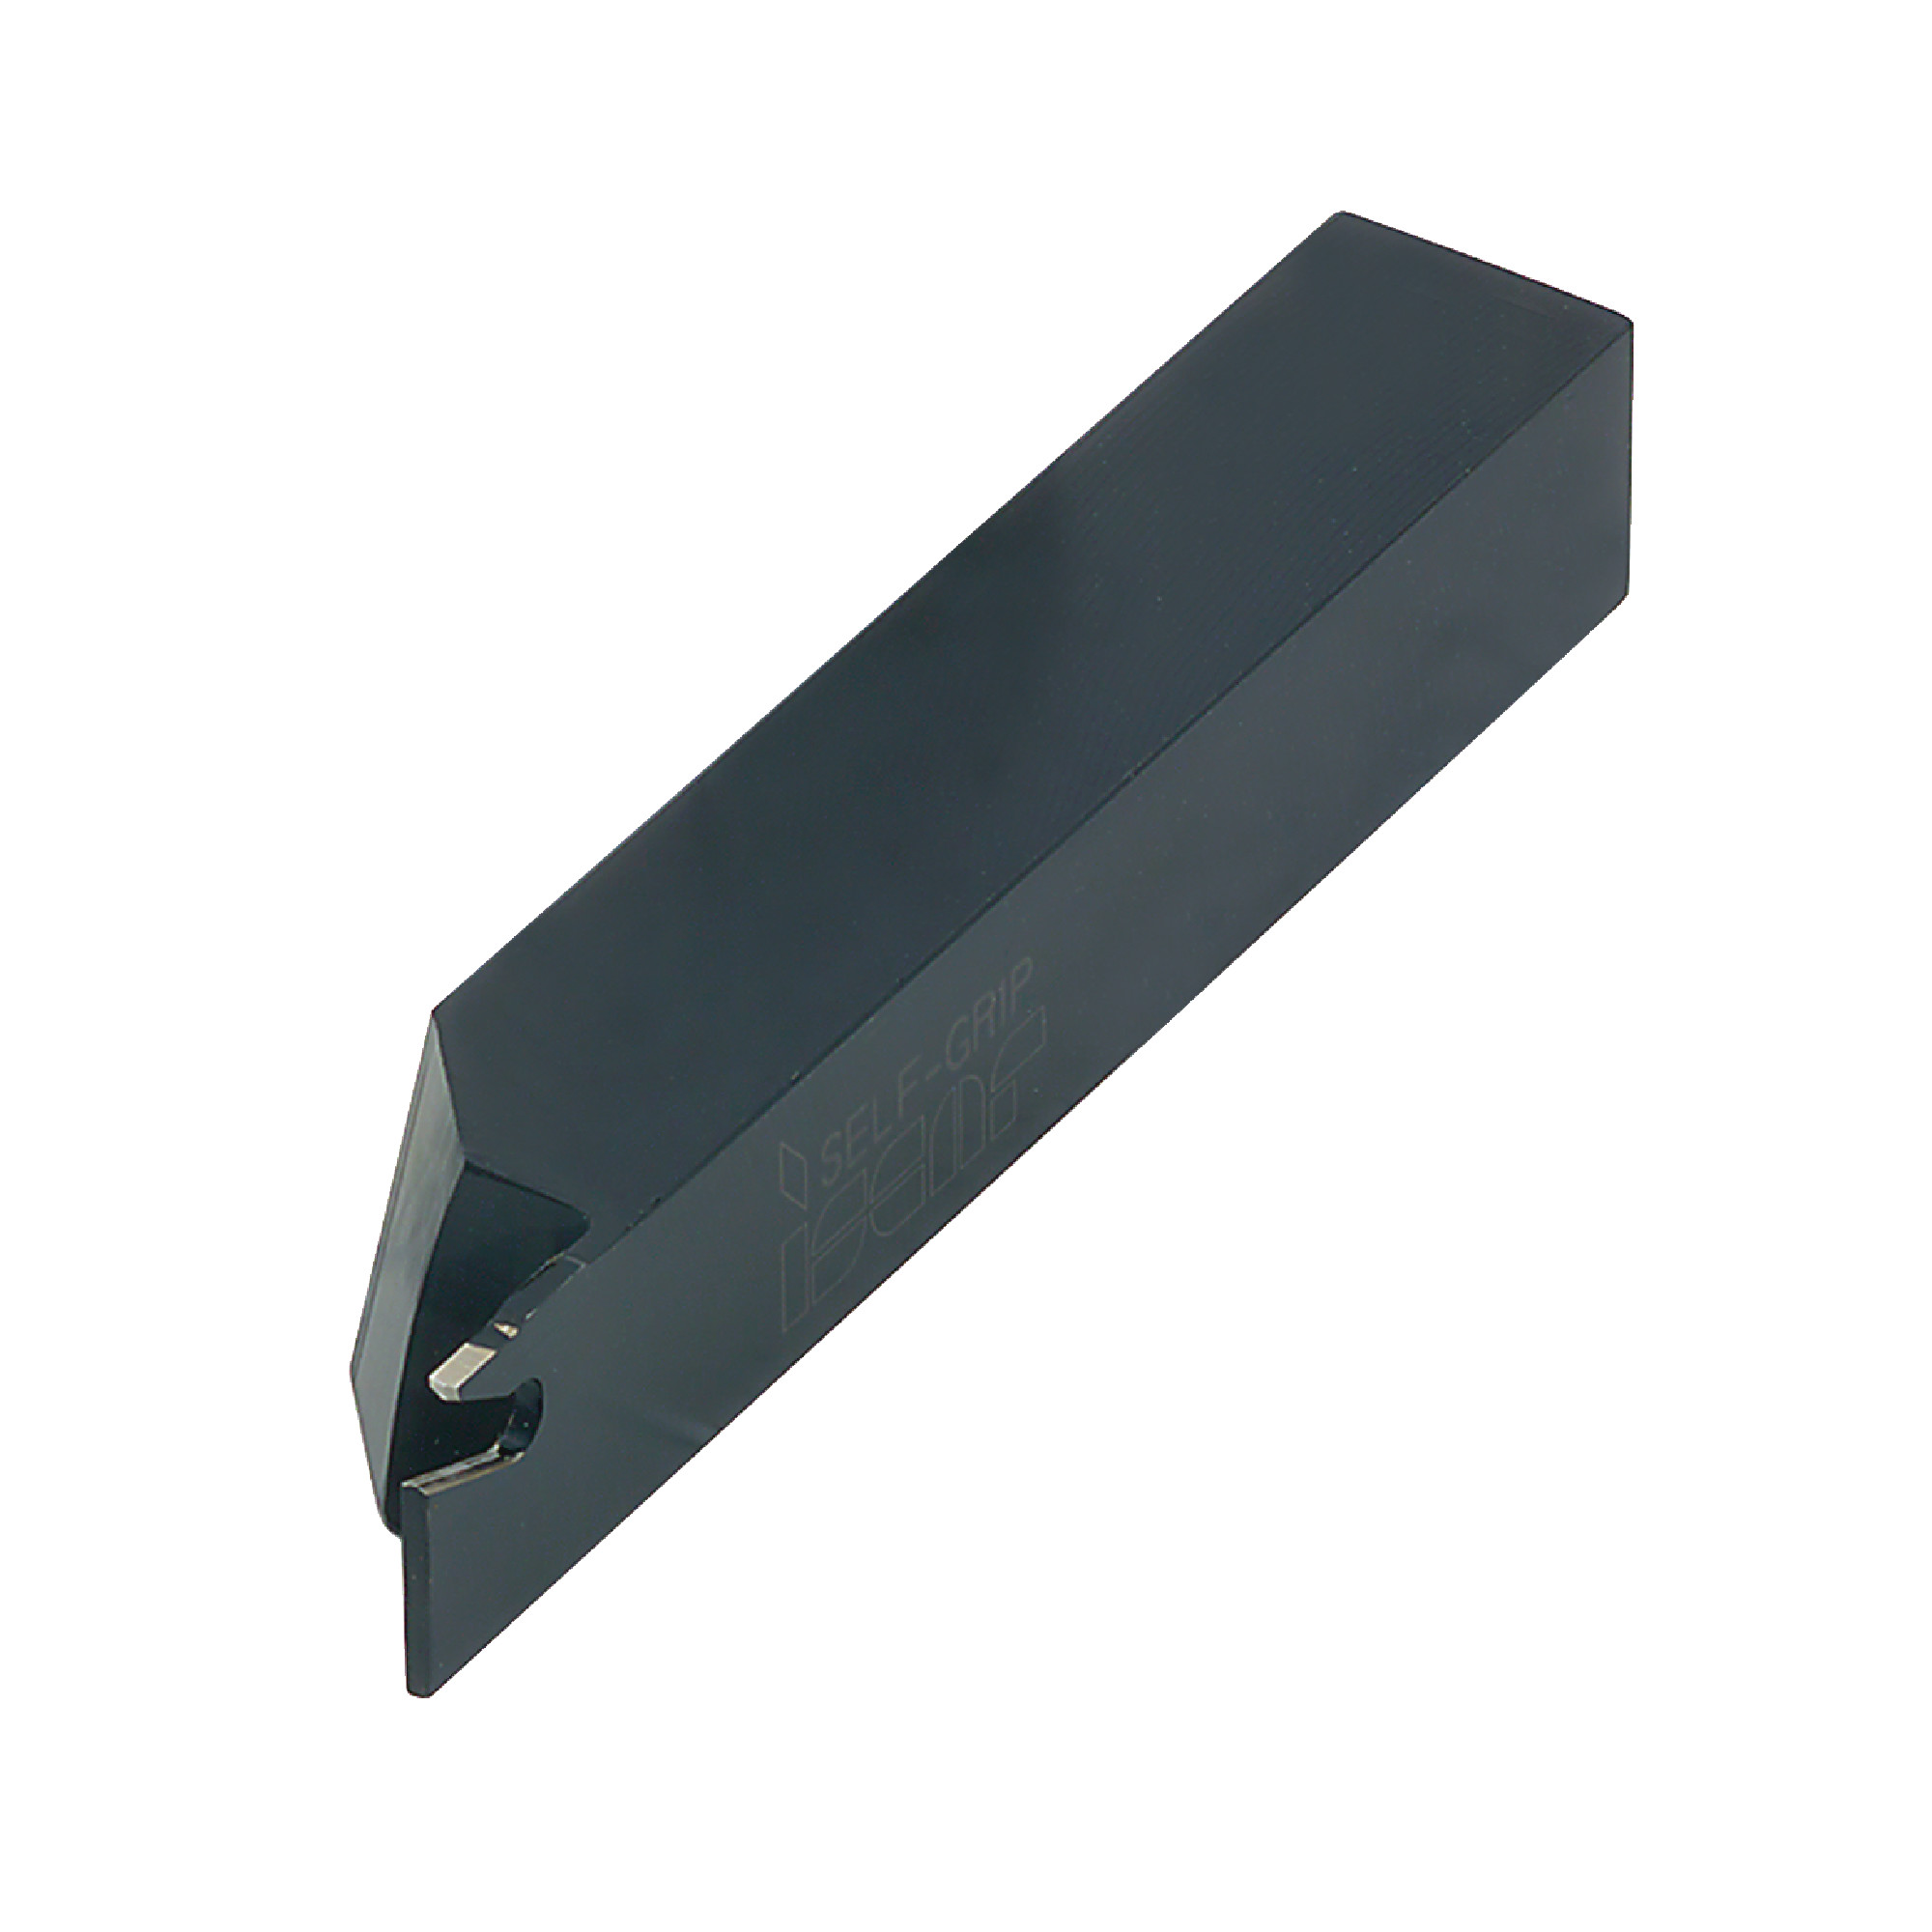 """ISCAR - SGTFR 25.4-6 / 1.000"""" Shank / External Monoblock Holder for Grooving & Parting / GFN 6 Self-Grip Inserts / Right"""